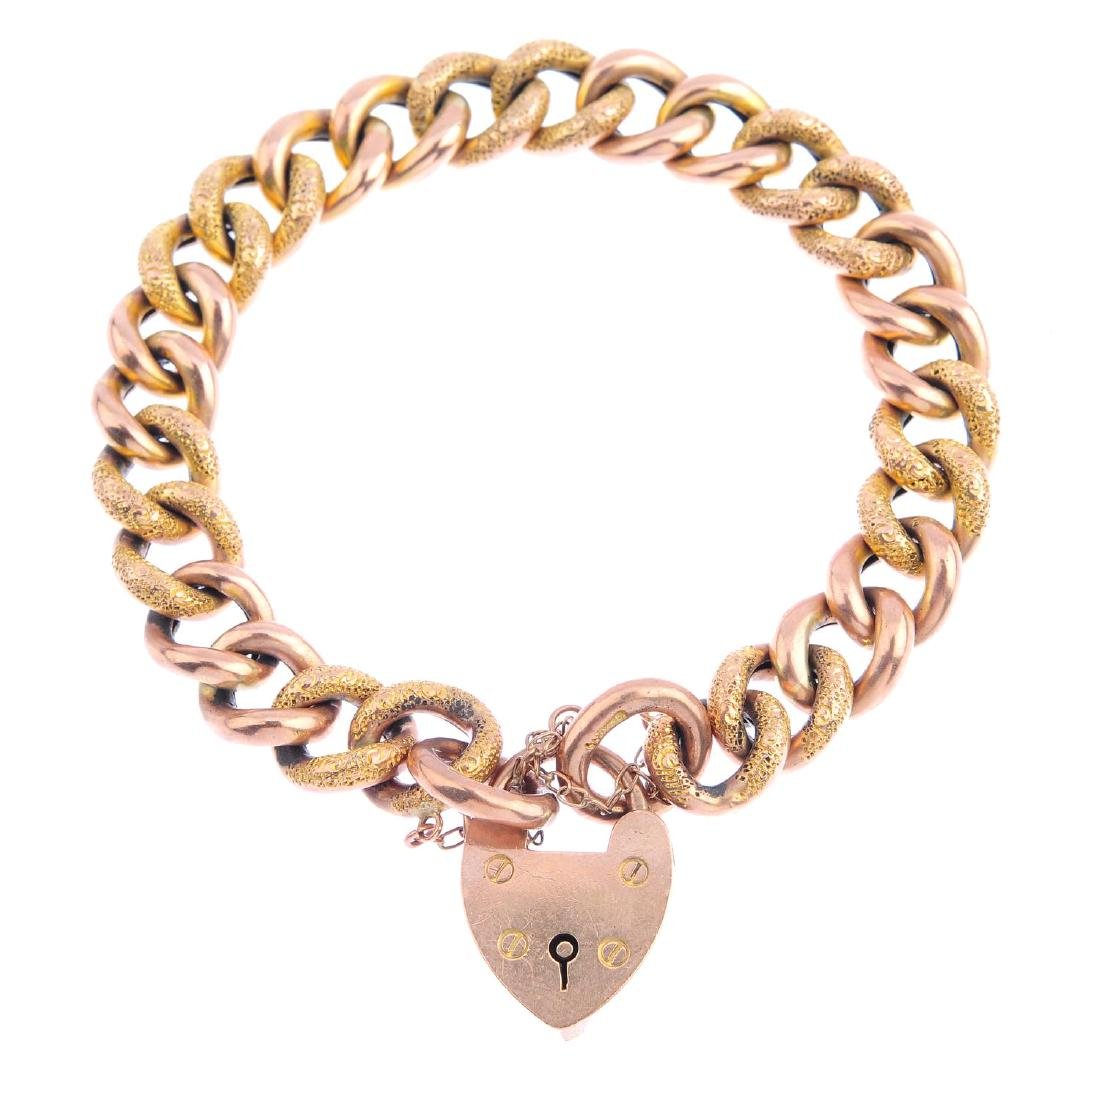 A late Victorian 9ct gold bracelet. The curb-link